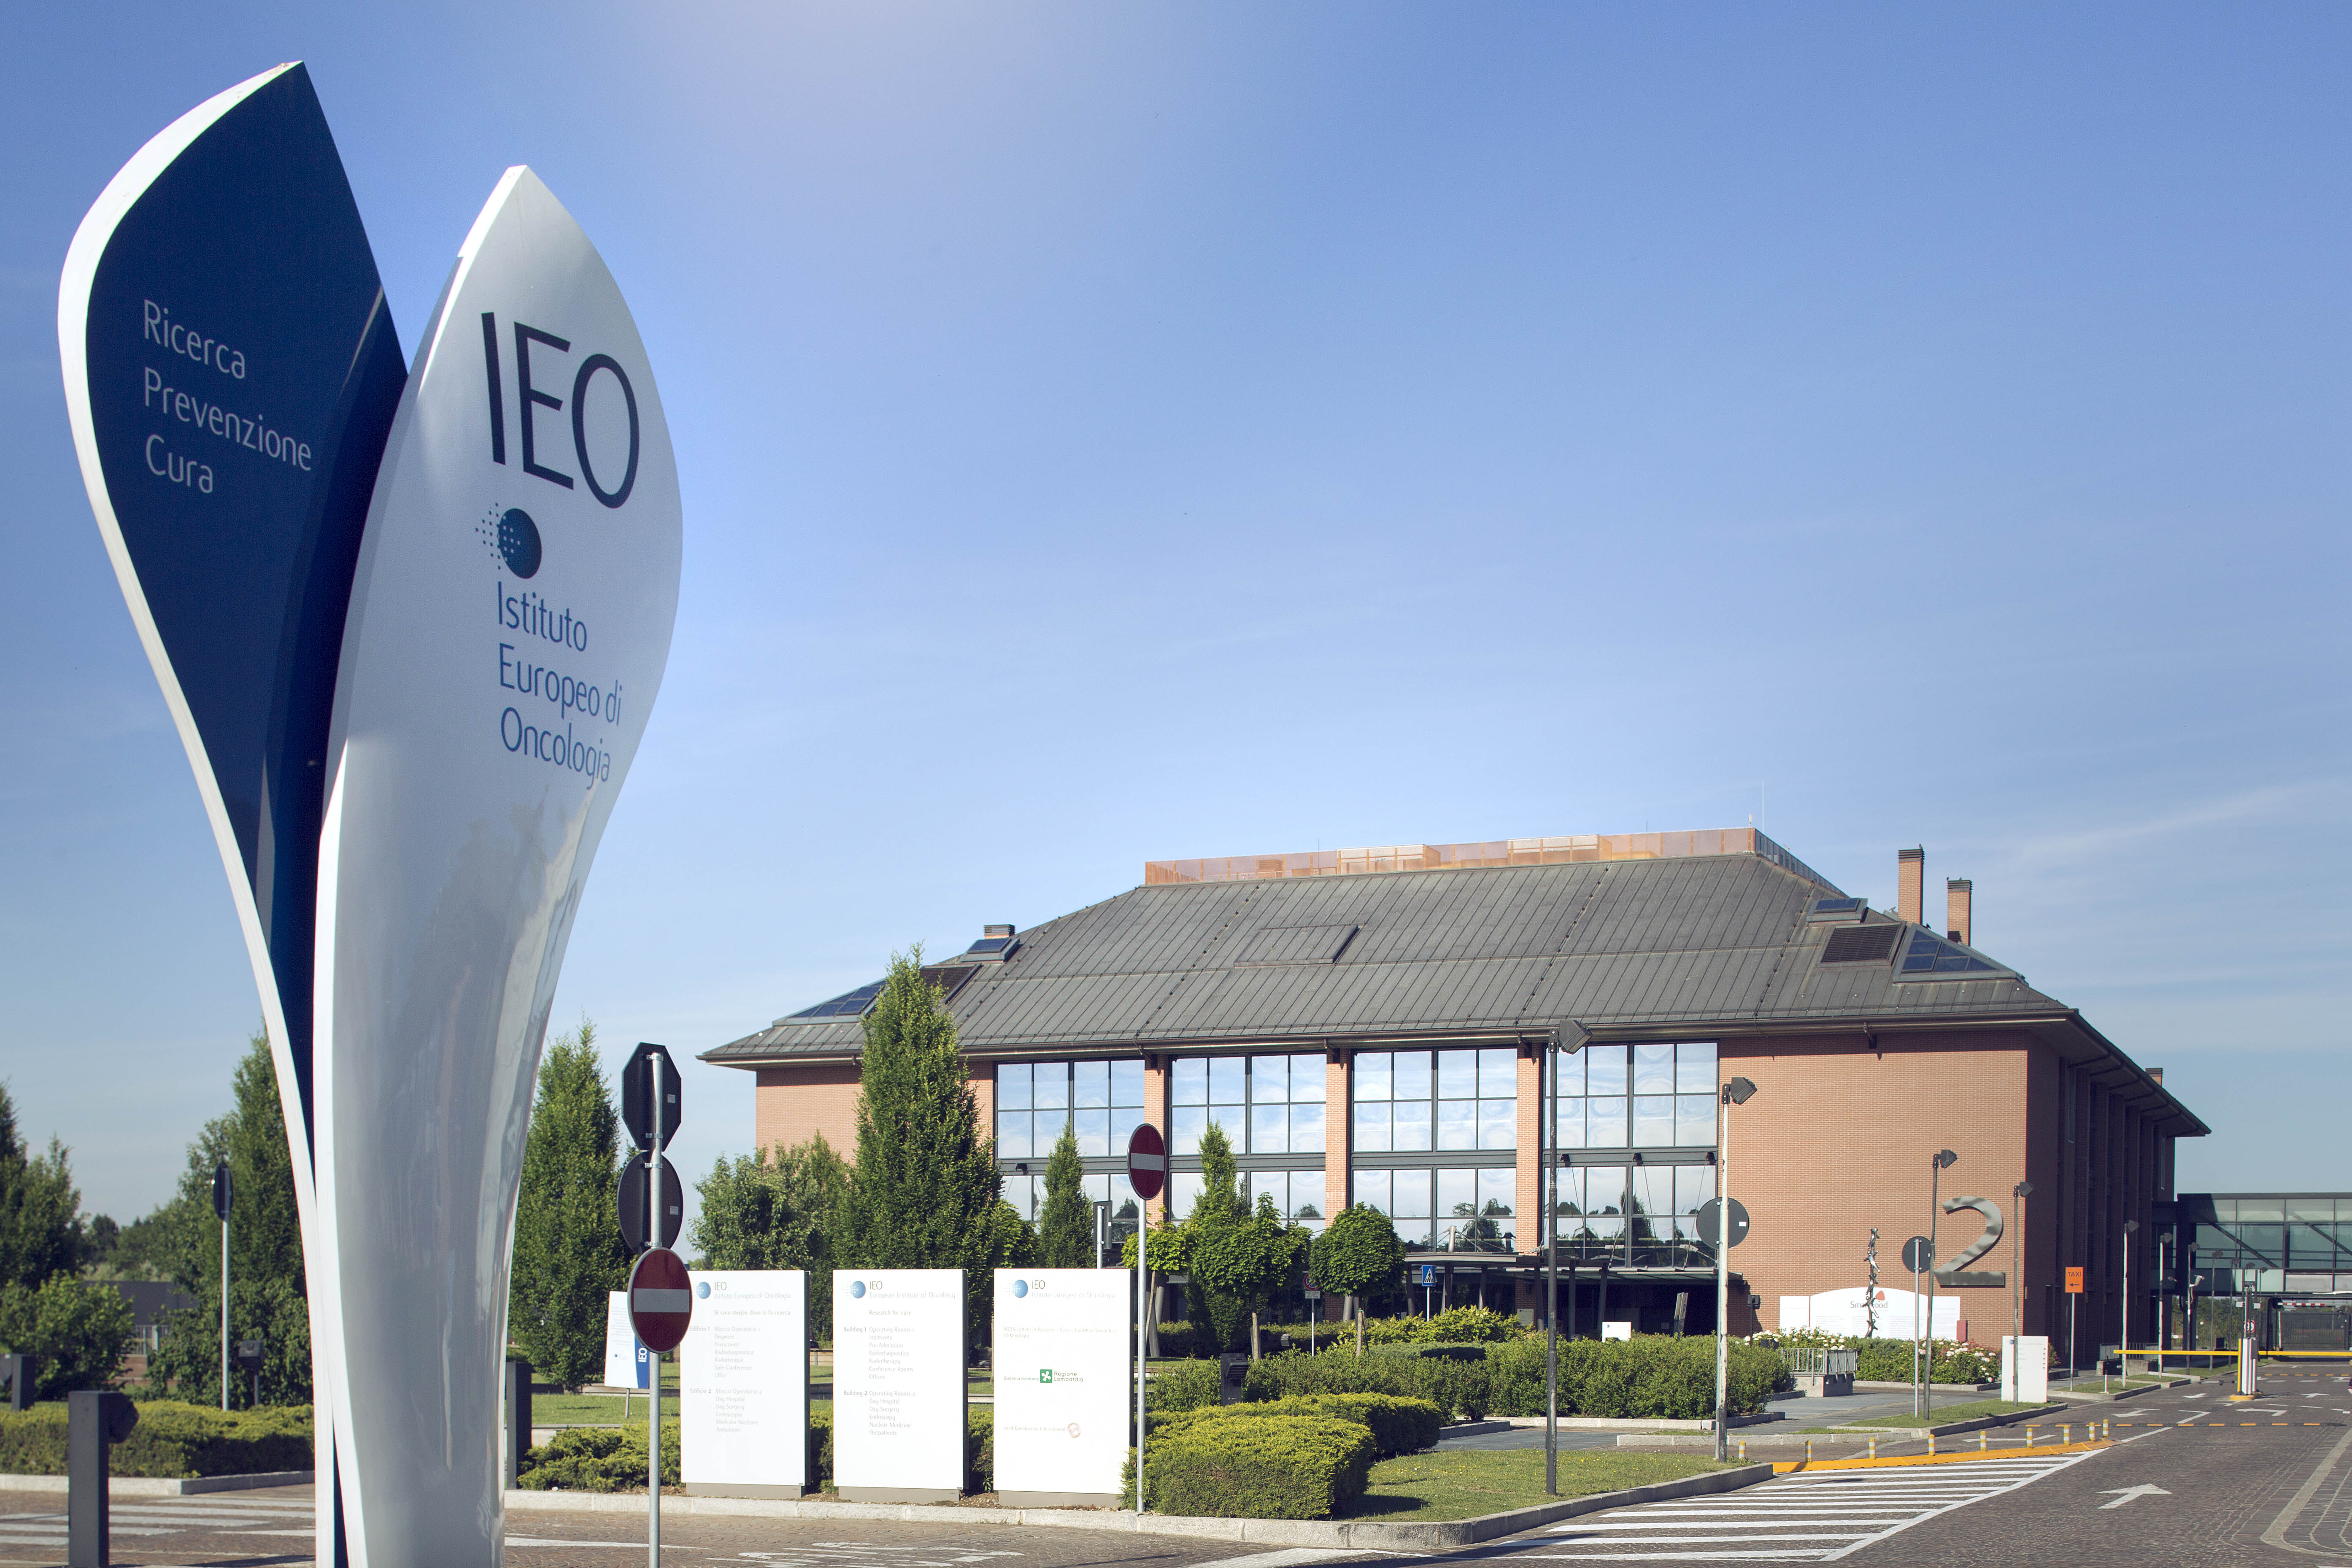 IEO headquarters